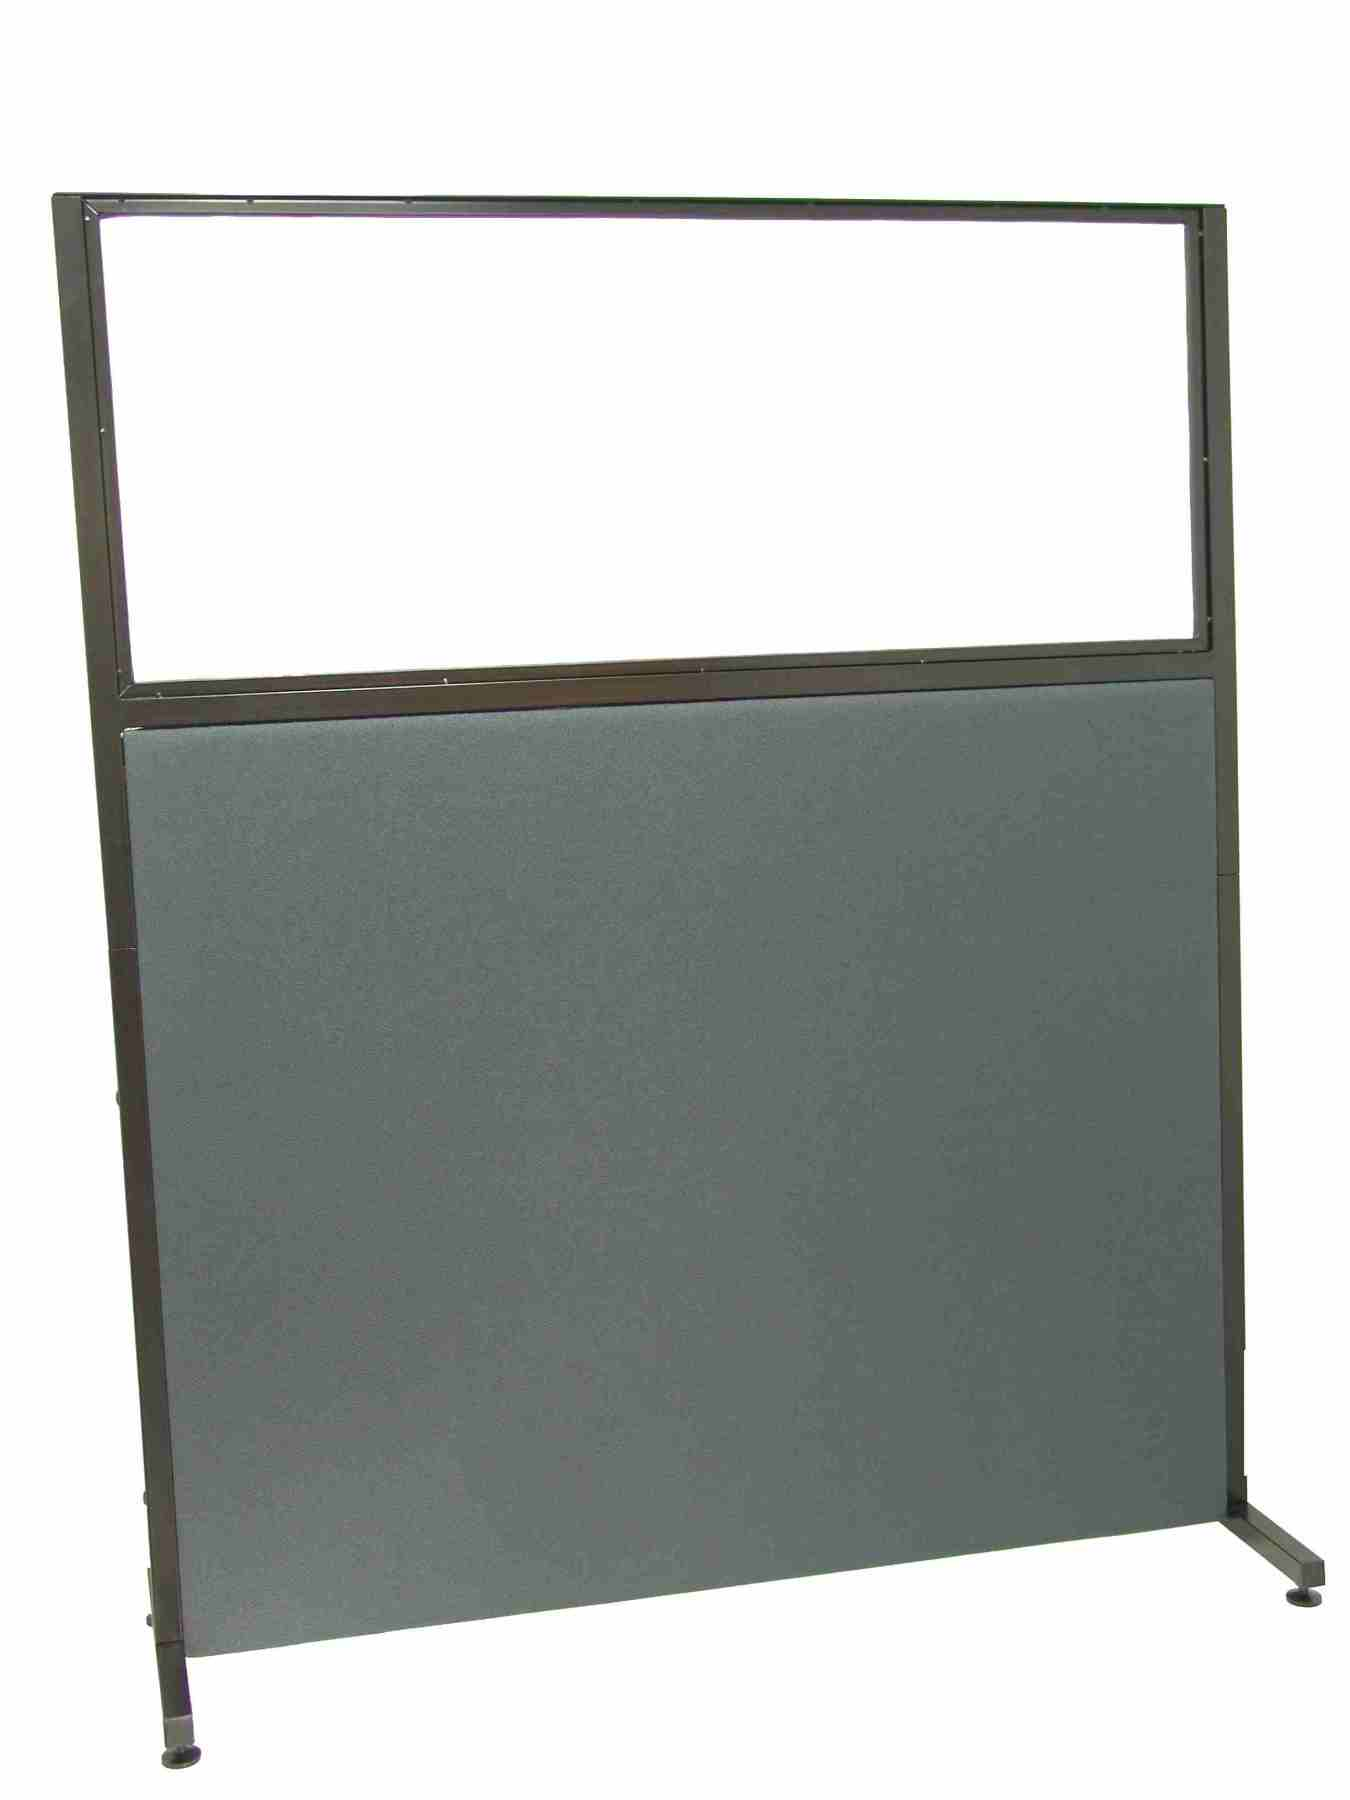 Room Divider Screen For Offices And Work Centres, Detachable And With Color Structure Black-Upholstered In Fabric BA